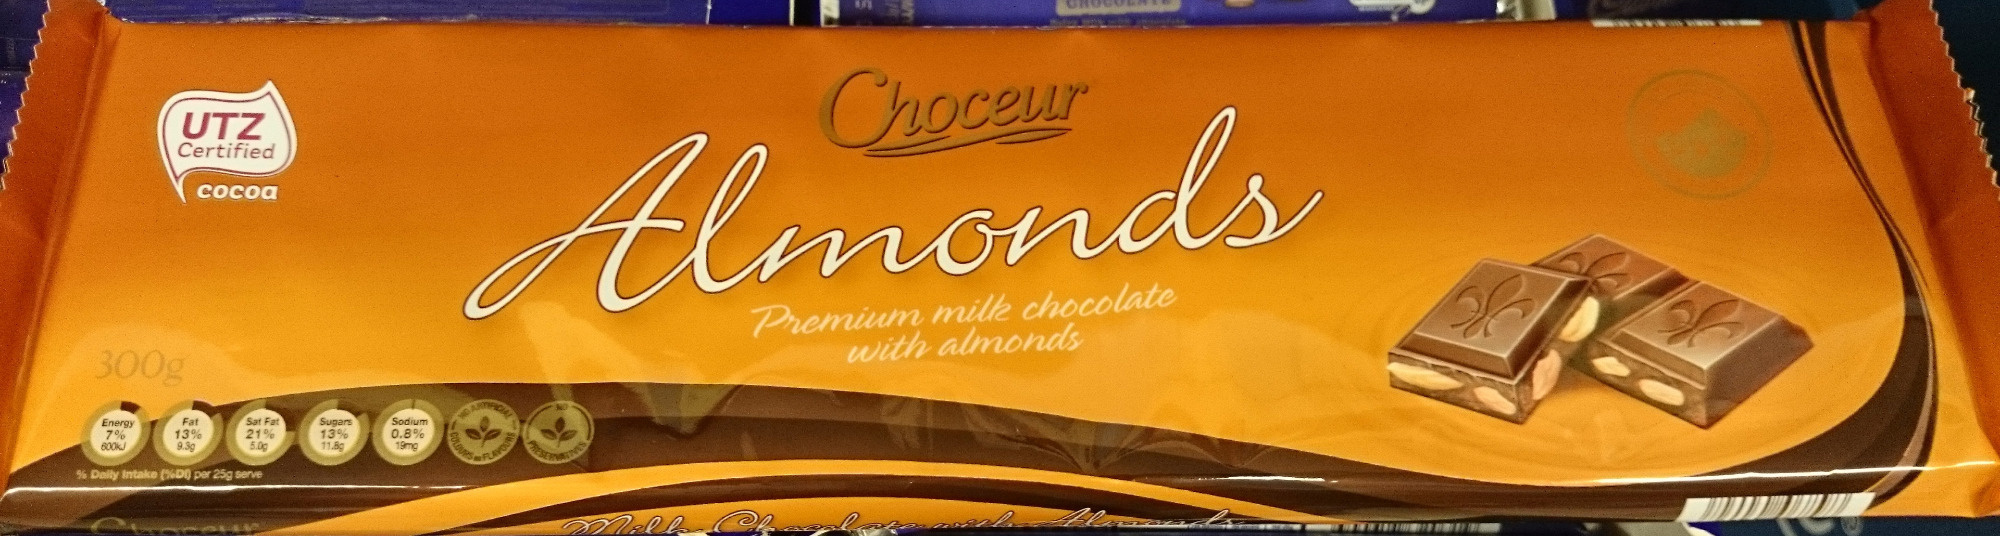 Almonds Chocolate Block - Produit - en